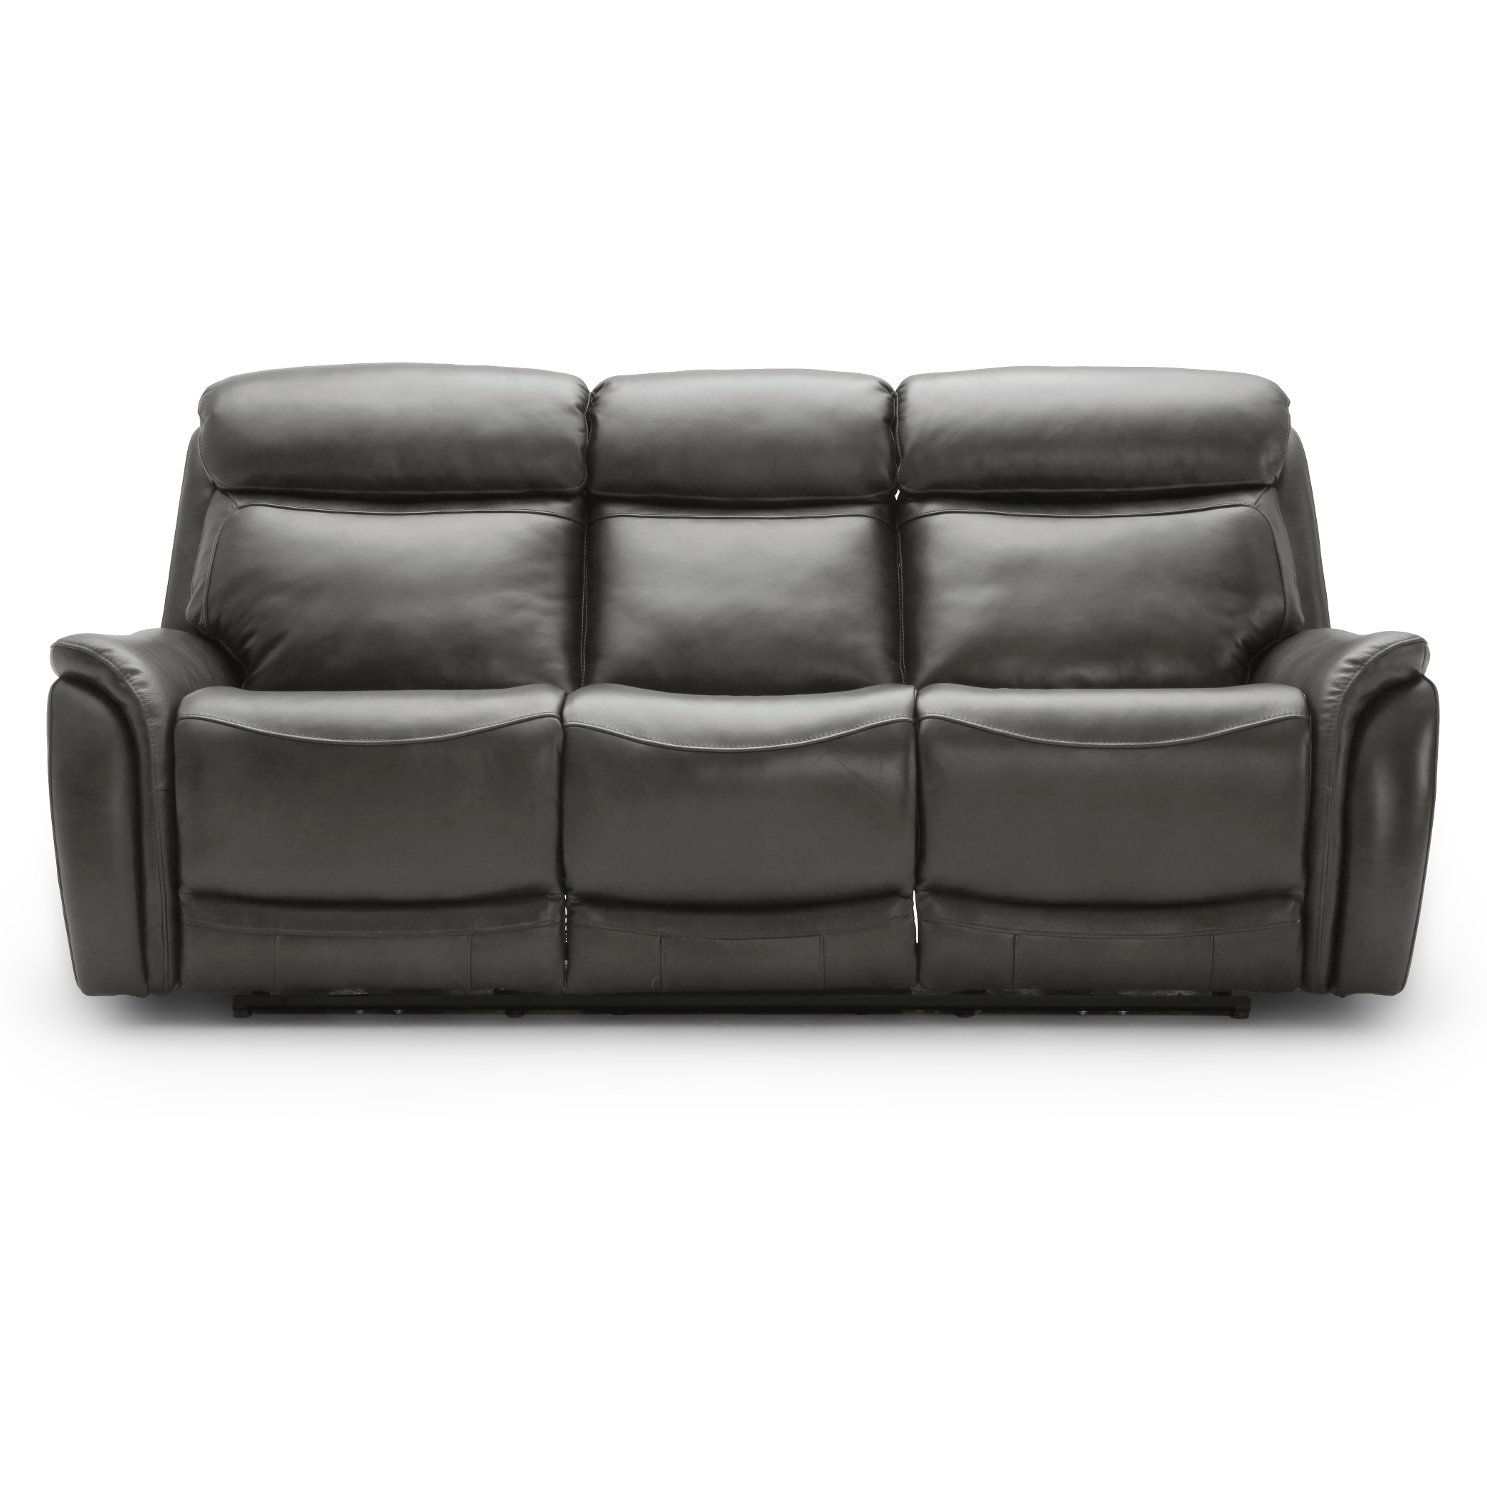 Charmant ... Gray Leather Match Dual Power Reclining Sofa   Happy Happy